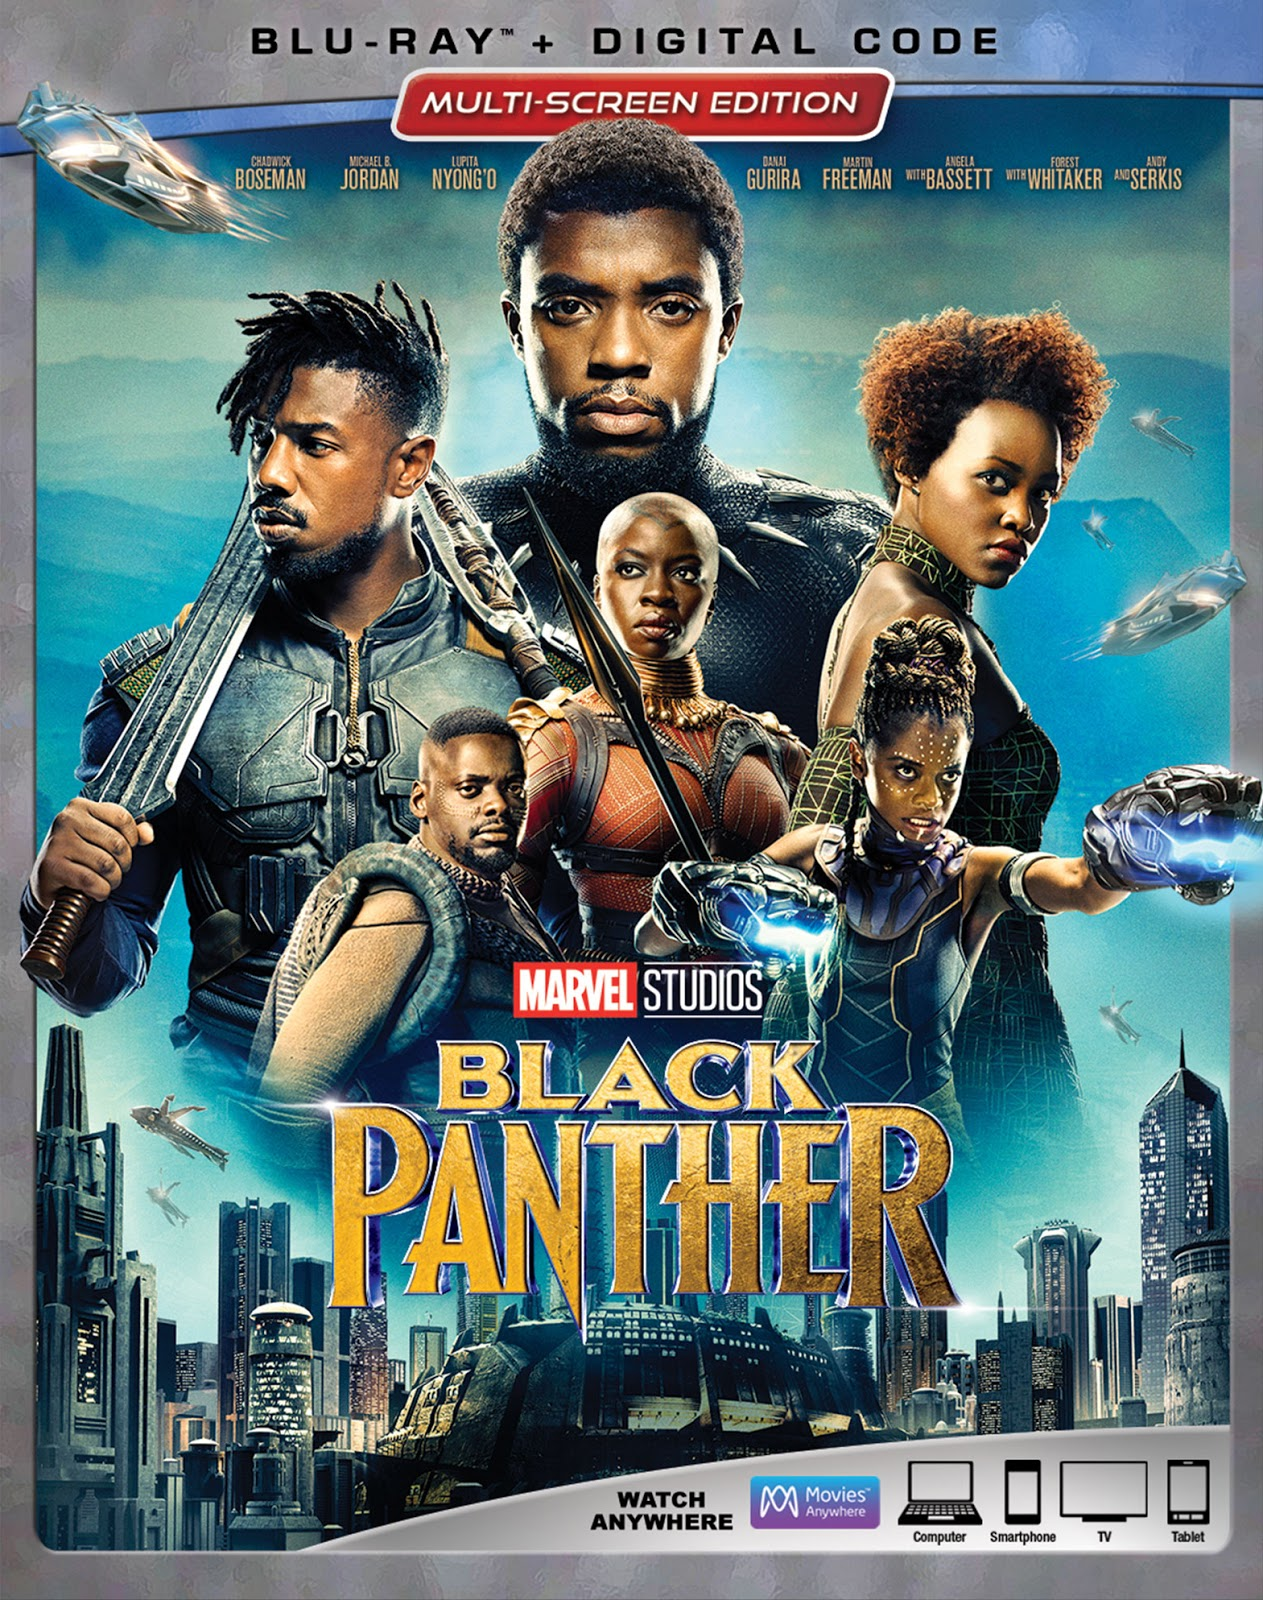 Black Panther , Movie , HD, MARVEL STUDIO ,2018 , Black Panther , Movie , HD, MARVEL STUDIO ,Action, Adventure, Drama, Science Fiction, Thriller2018 ,